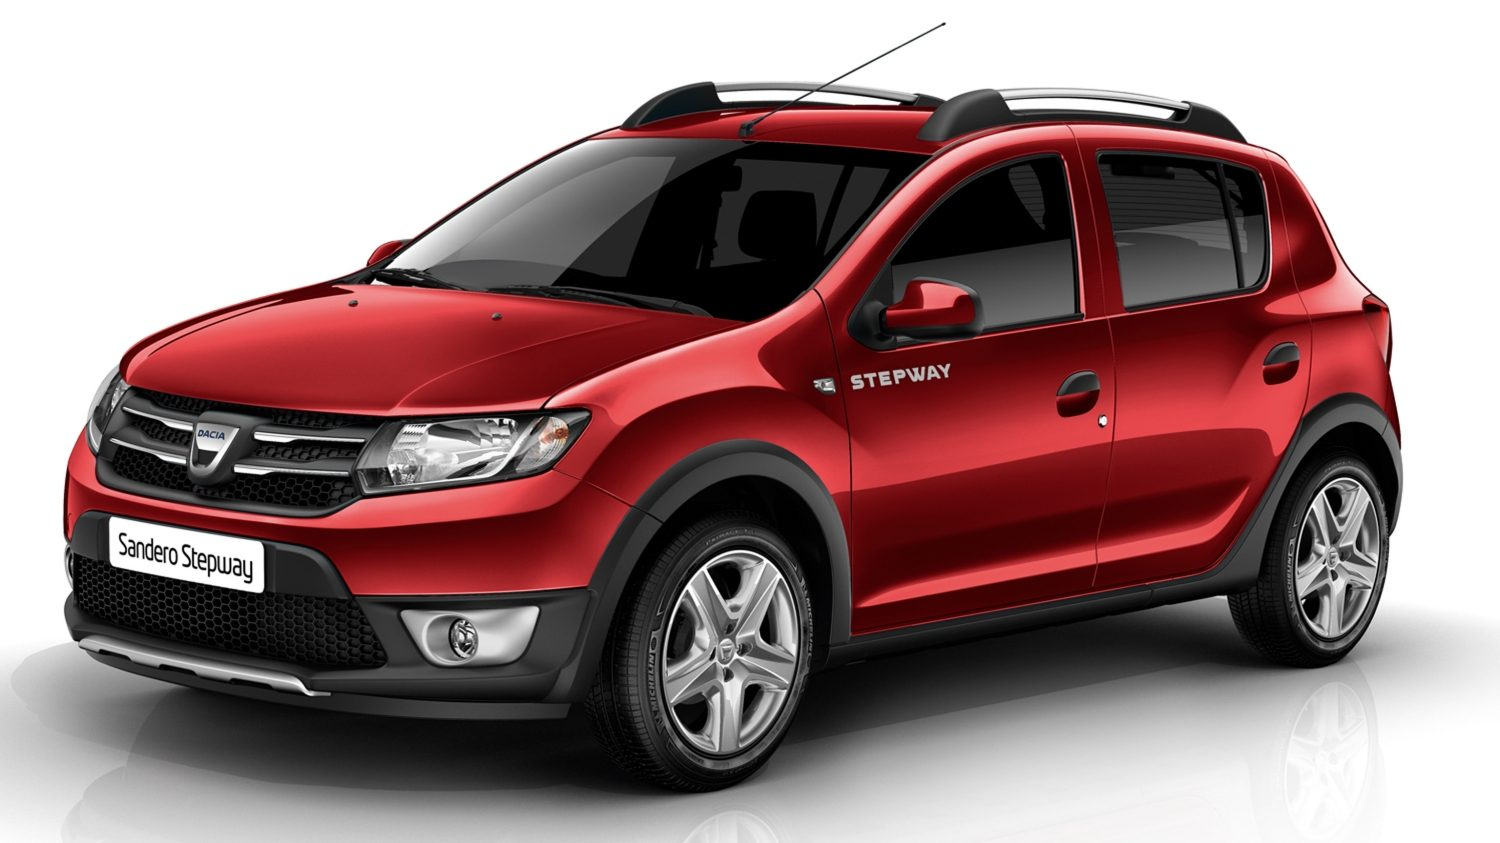 2018 dacia sandero stepway interior features new suv price. Black Bedroom Furniture Sets. Home Design Ideas